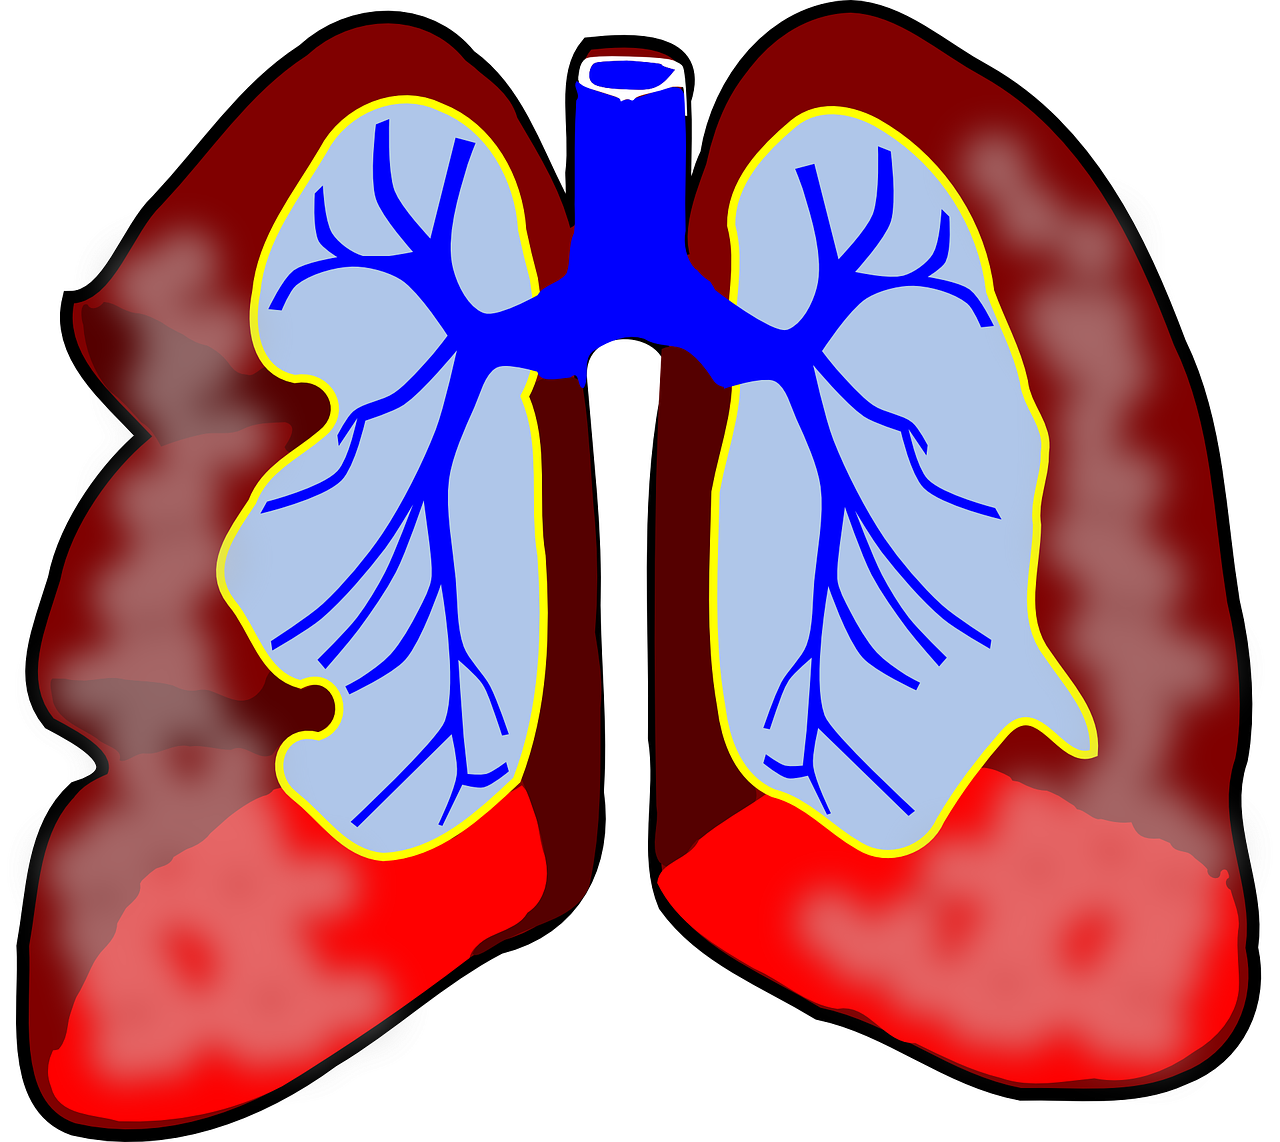 Graphical image of lungs